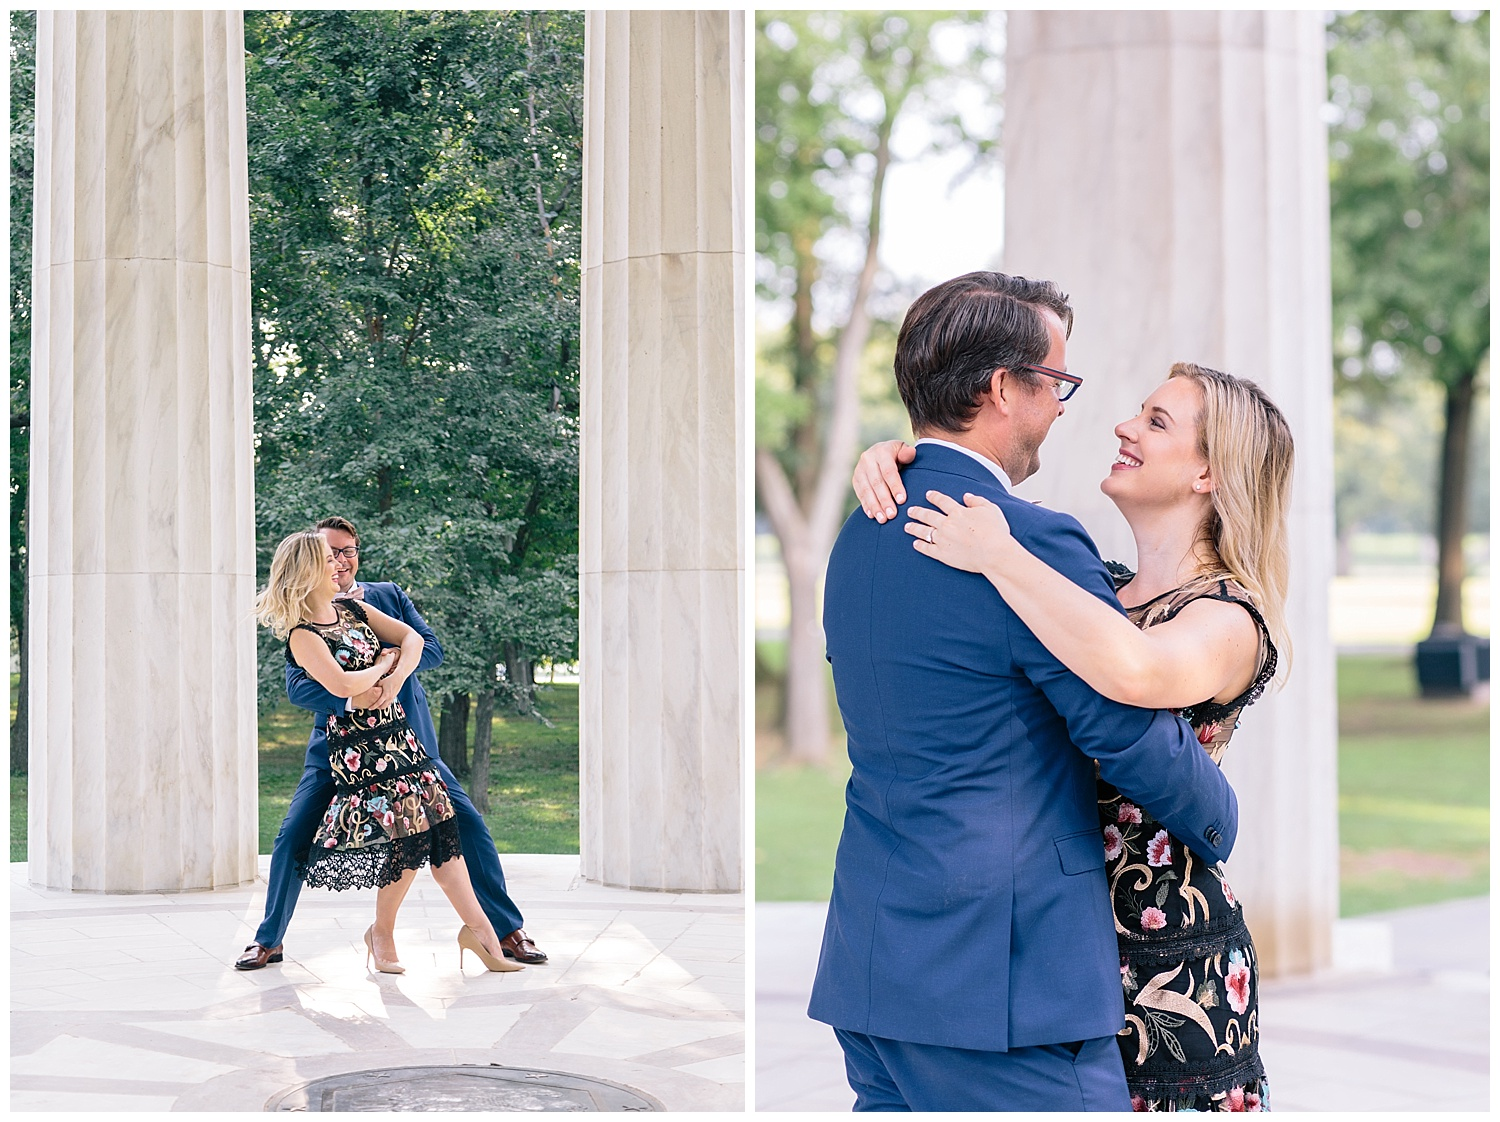 emily-belson-photography-washington-dc-engagement-emily-john-17.jpg